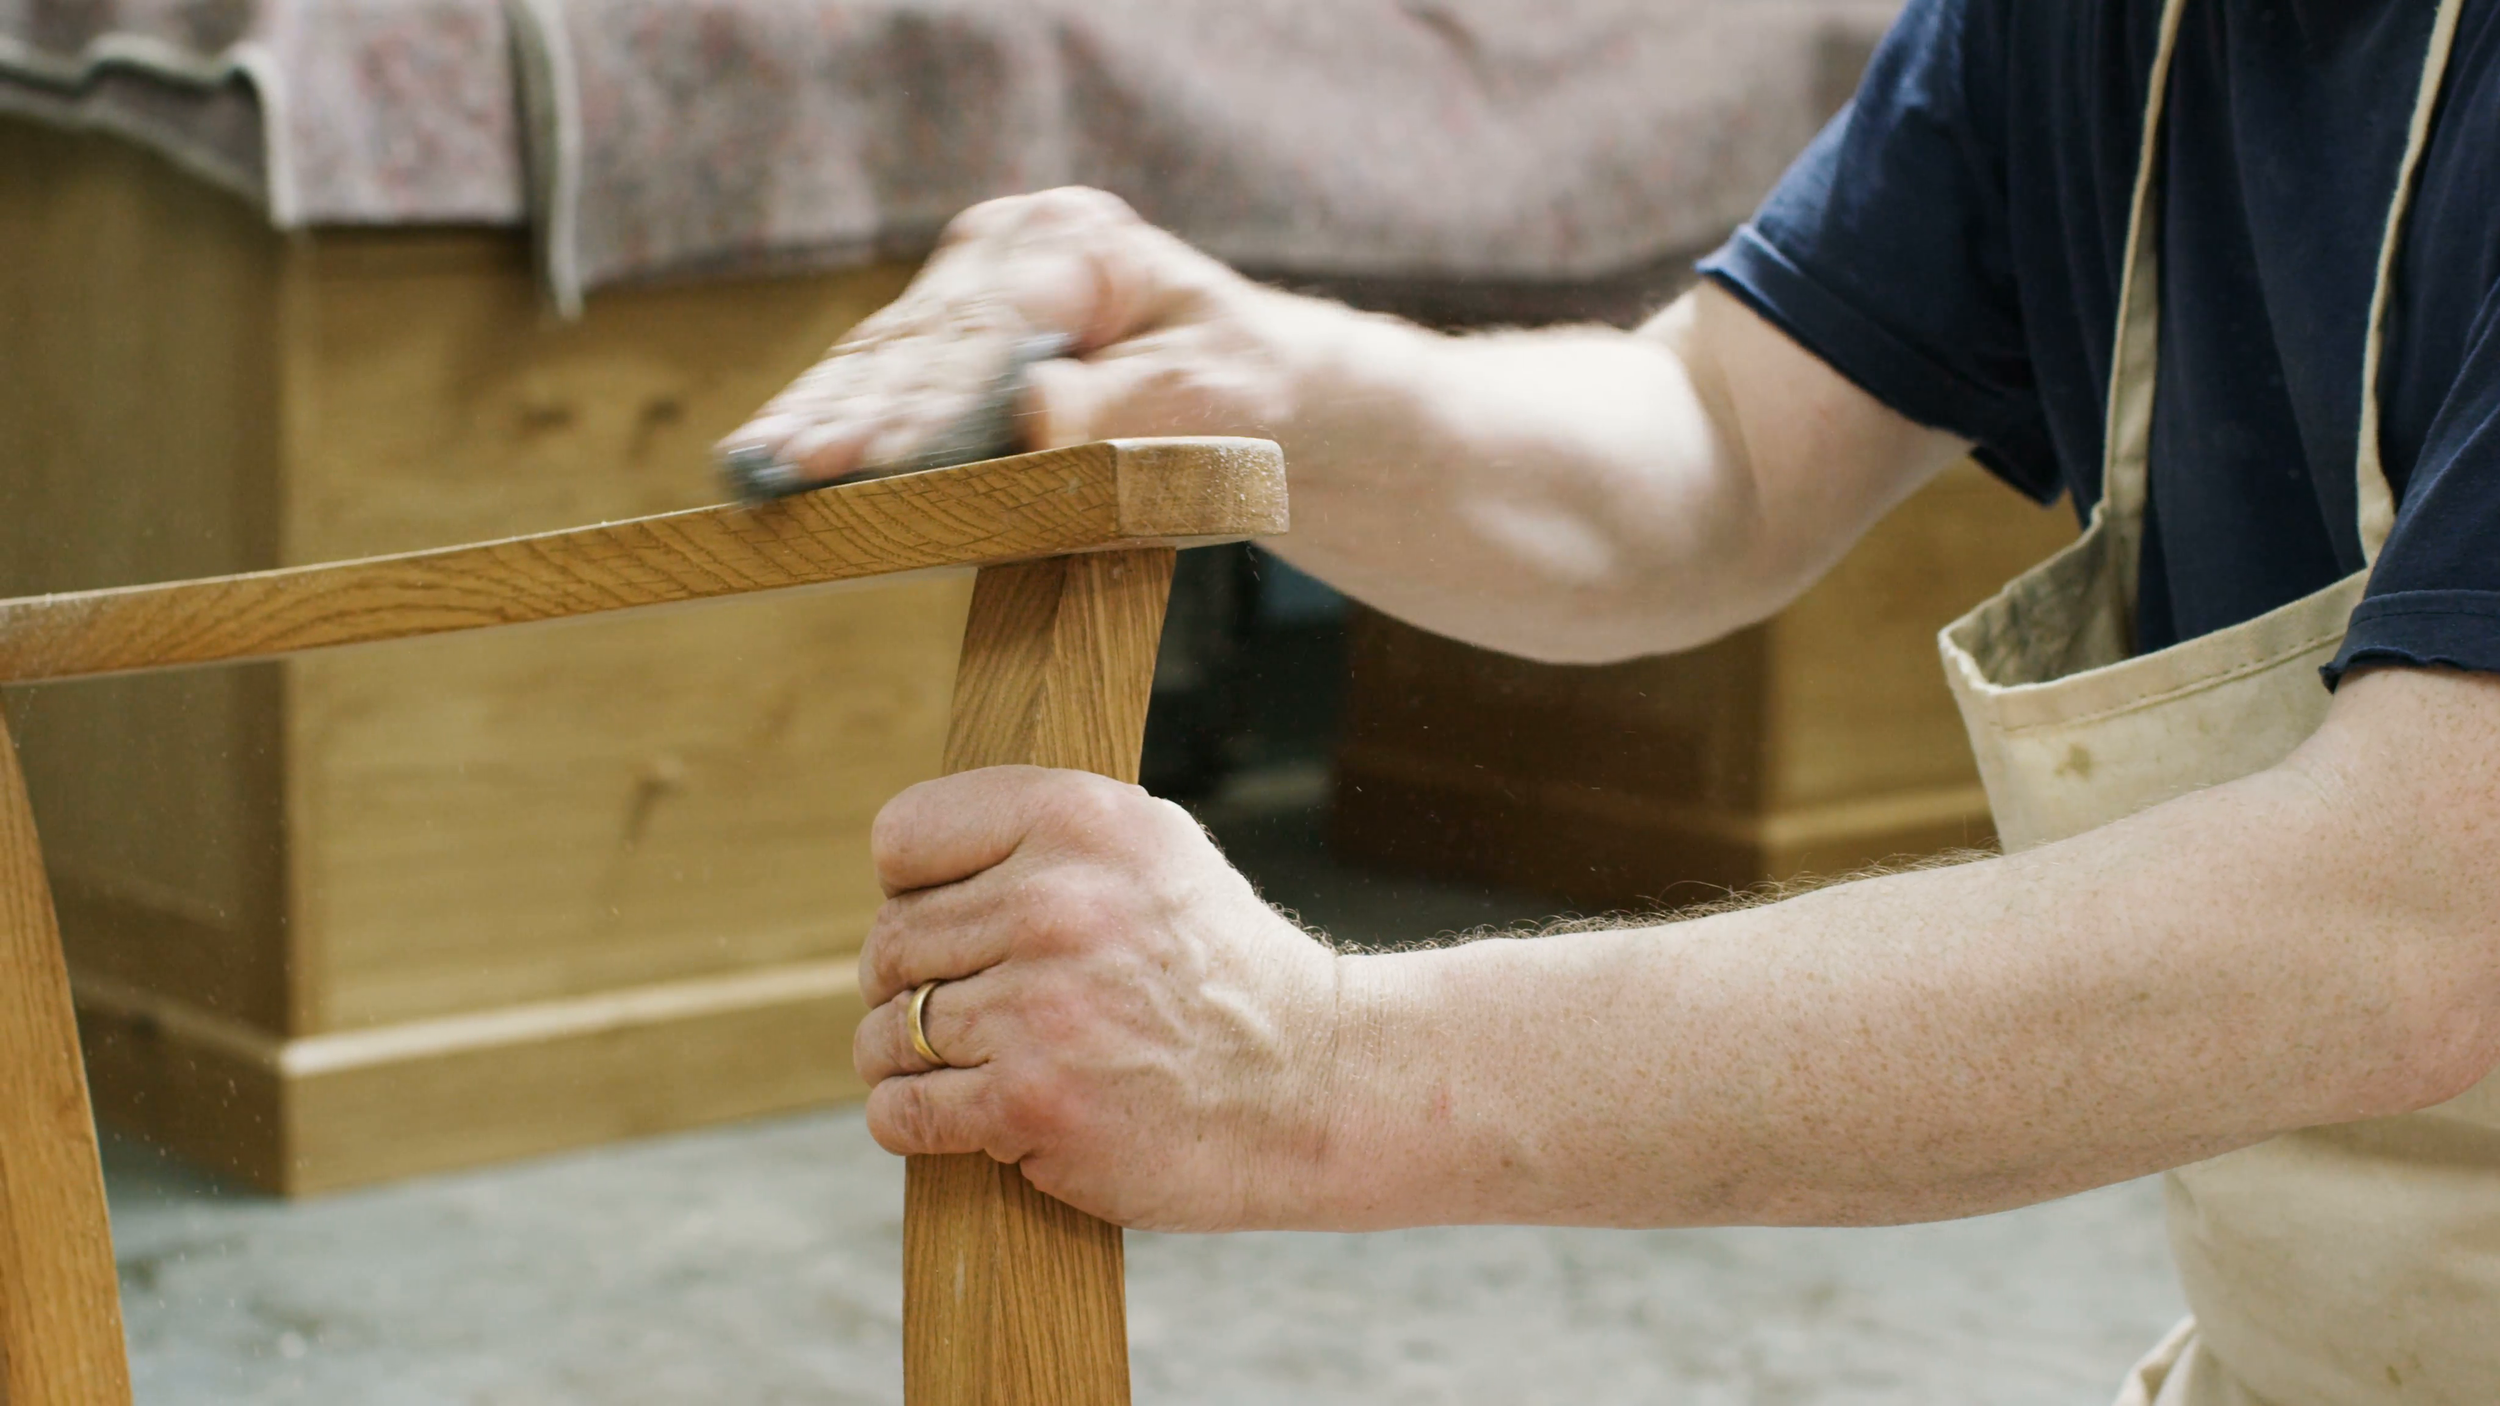 4k-close-up-on-hands-of-furniture-maker-in-his-workshop-putting-the-finishing-touches-to-a-rocking-chair-shot-on-red-epic_e7qethhtx__F0000.png